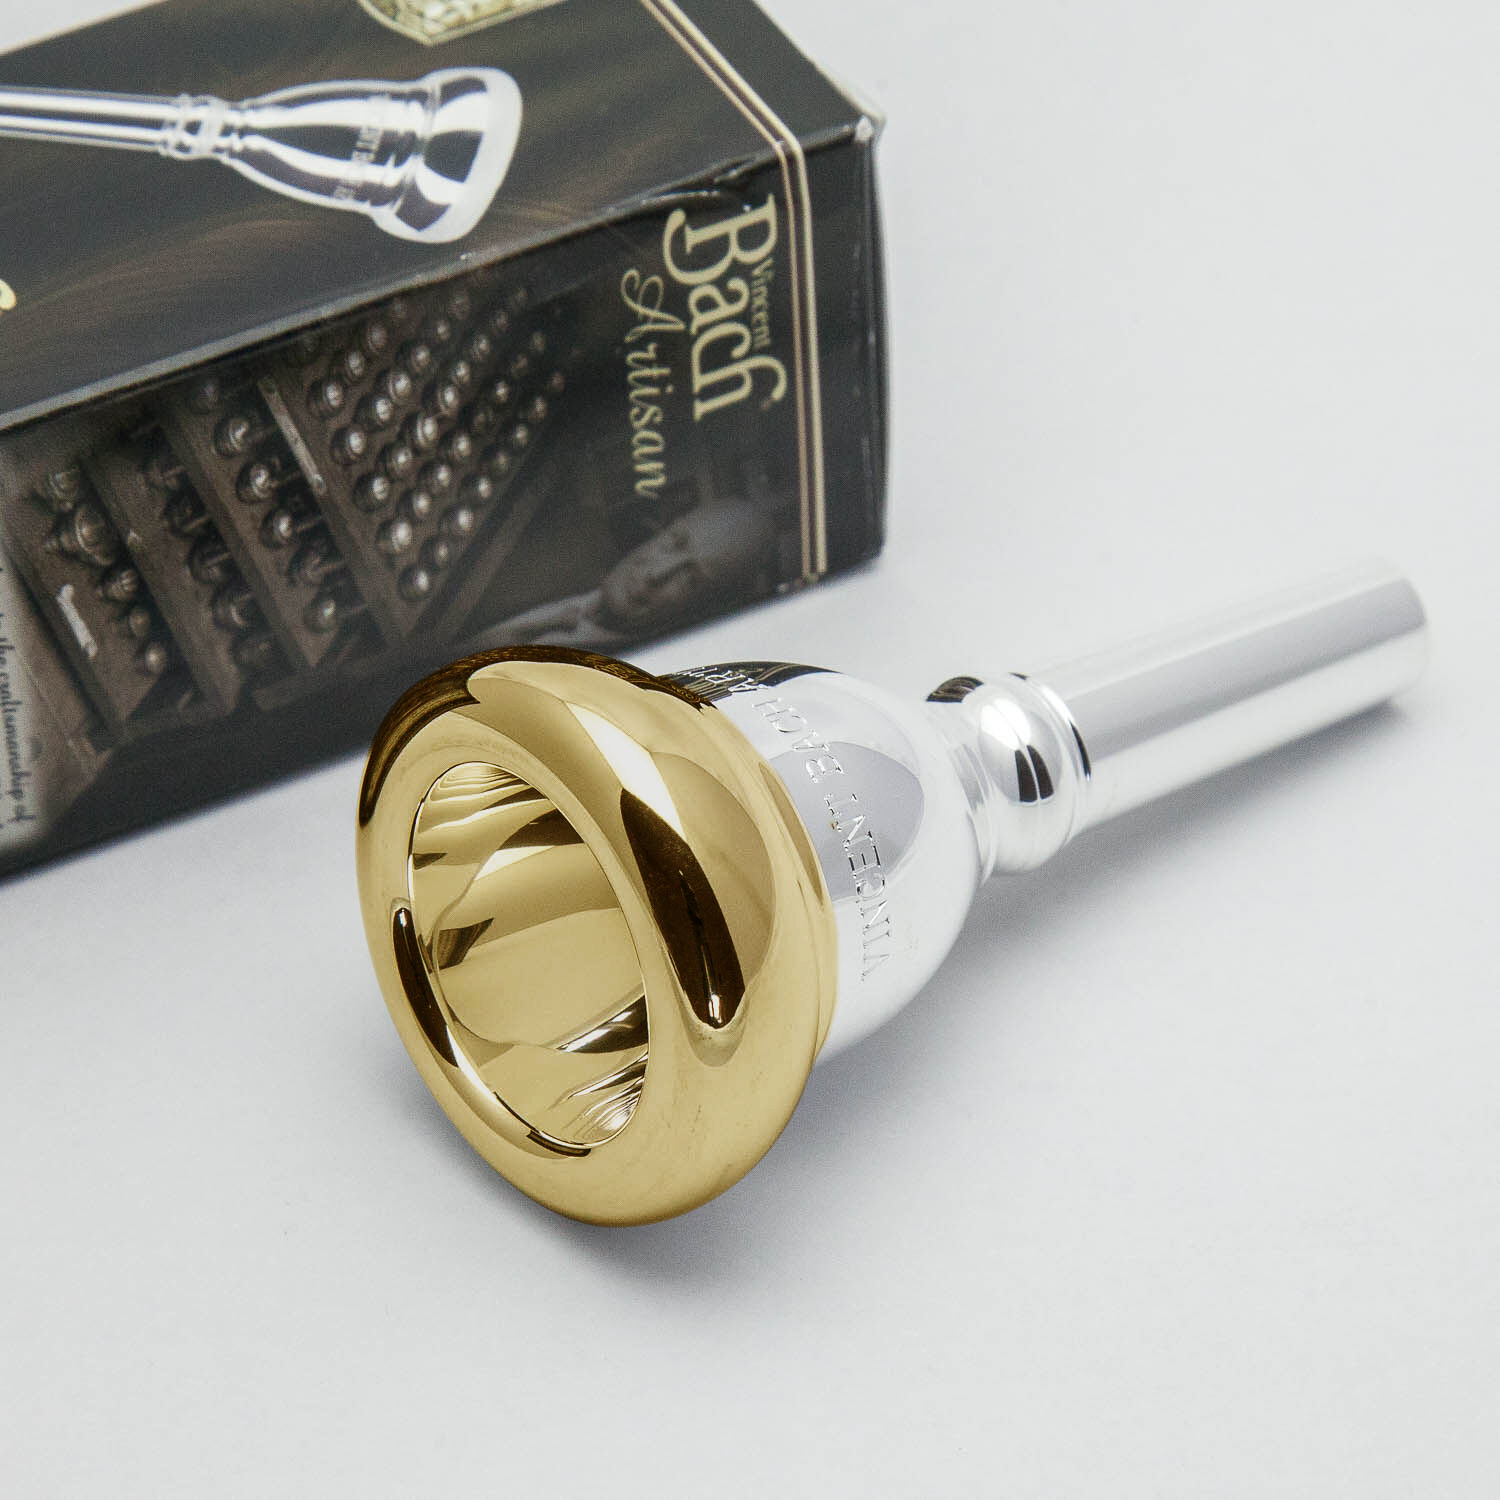 Bach 11C Gold Rim Artisan Small Shank Trombone Mouthpiece 402 BB .2283  Throat